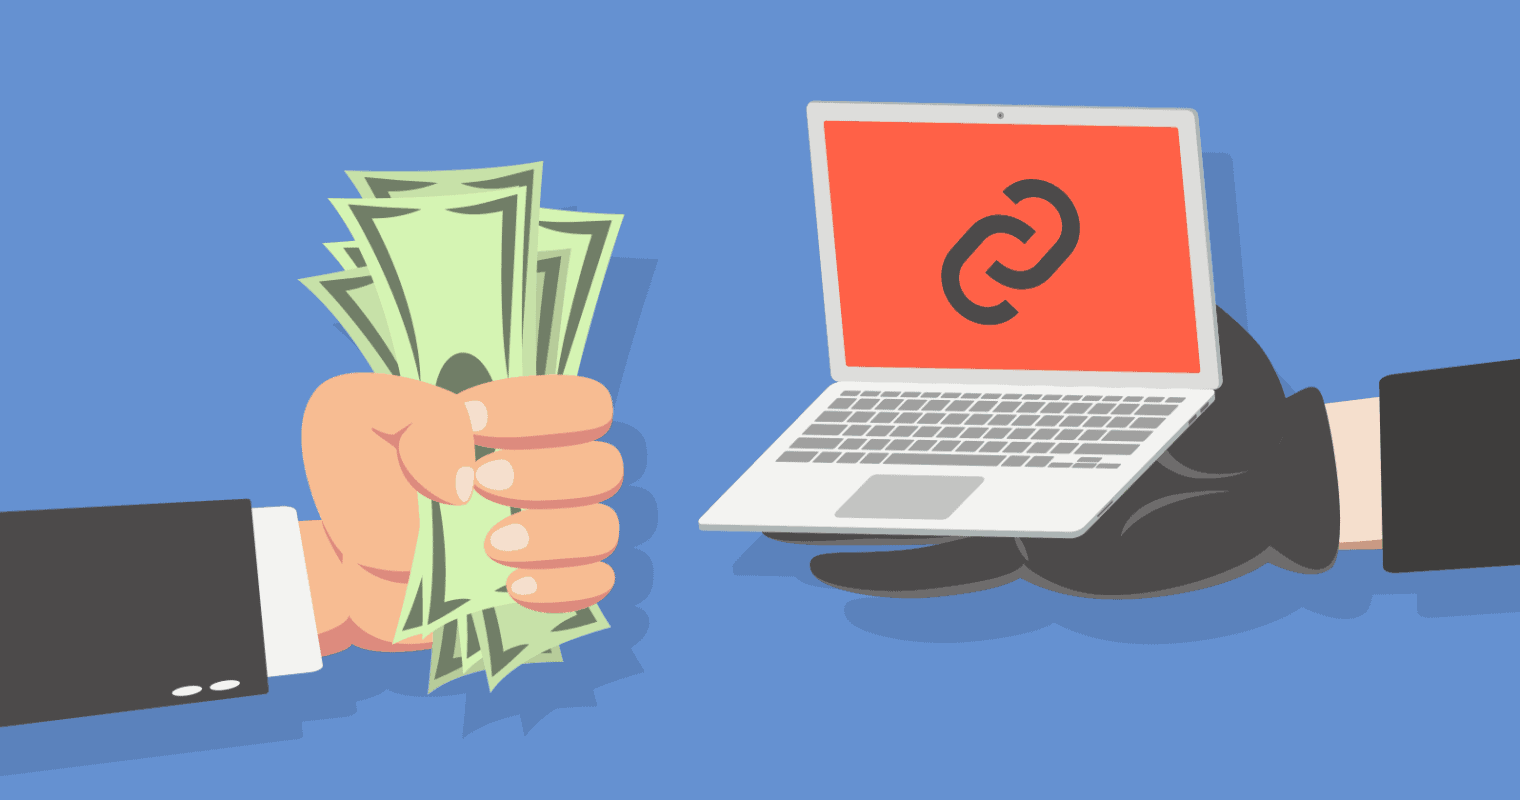 Picture Showing Dollars and a link on a laptop sign on a laptop. Source Search Engine Journal. For Article on Rank Higher By Web Worx Labs